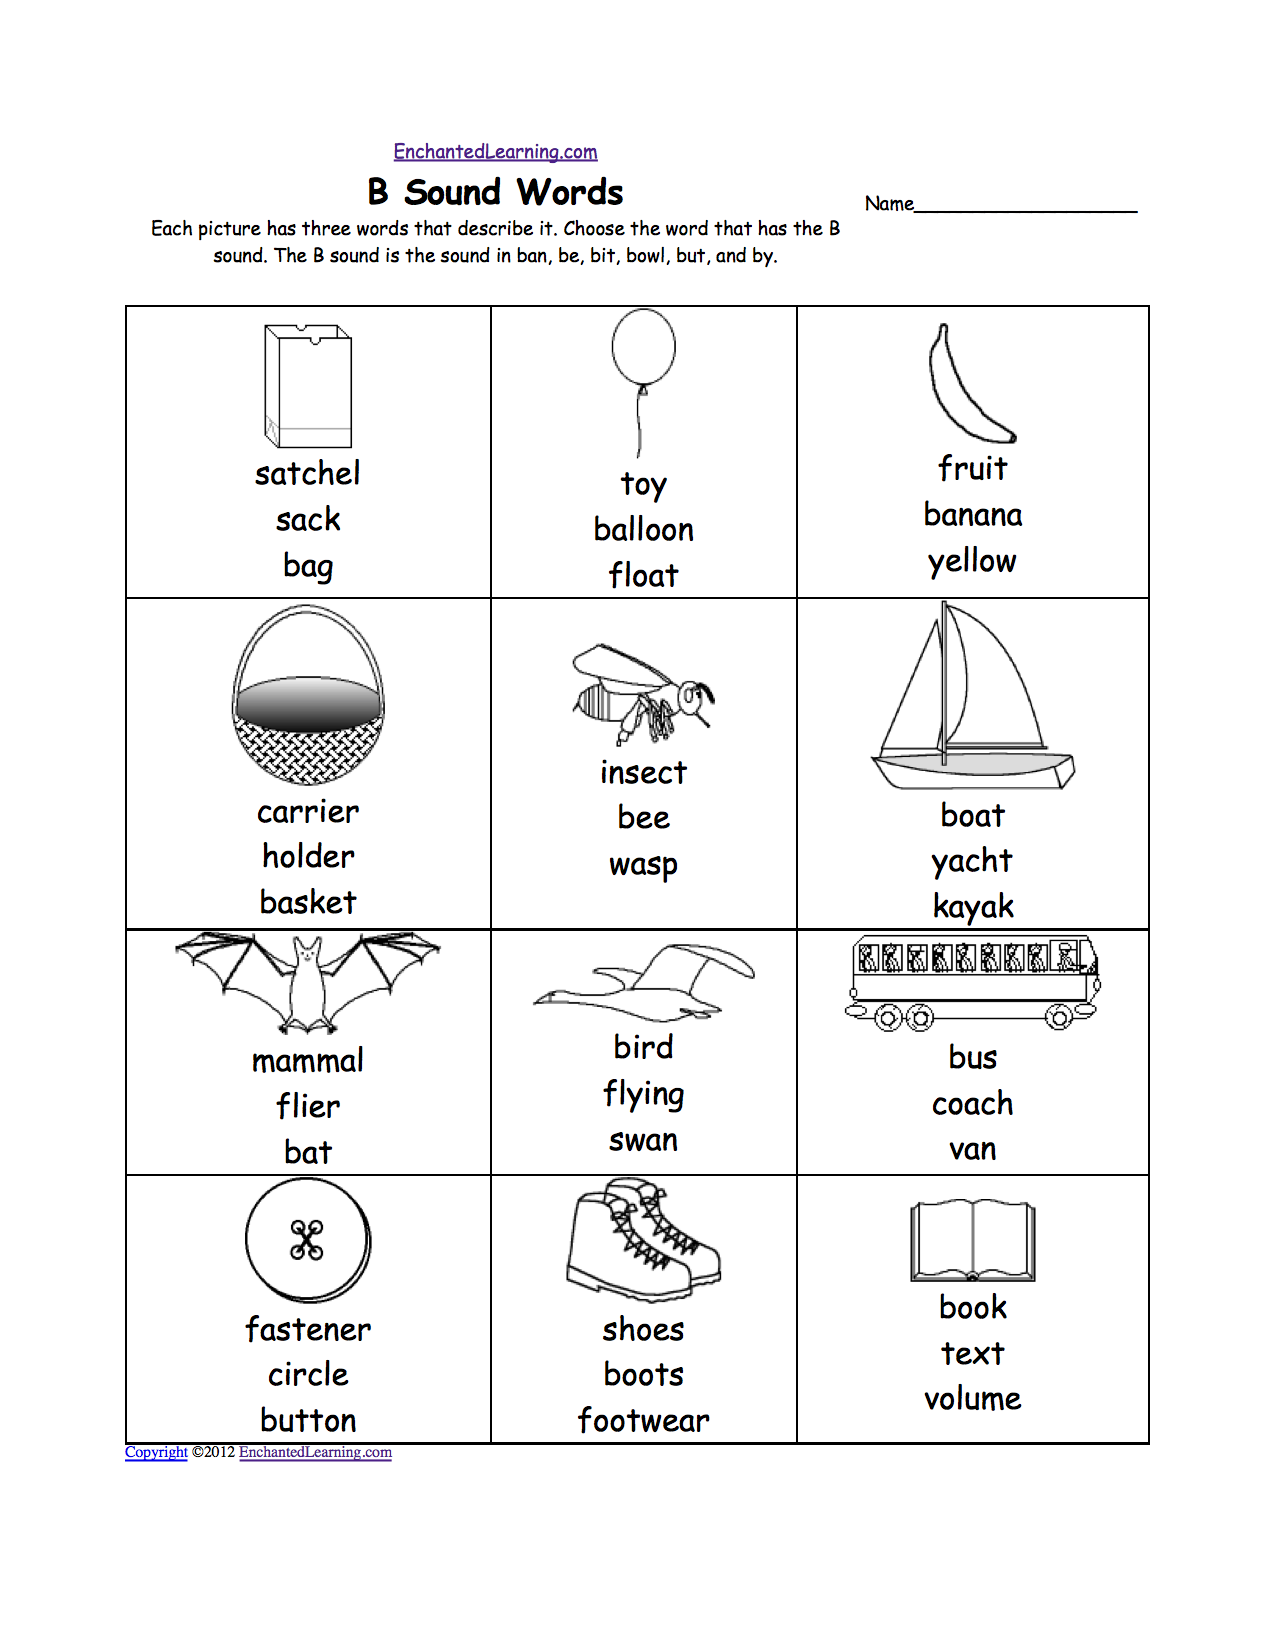 Weirdmailus  Inspiring Phonics Worksheets Multiple Choice Worksheets To Print  With Fair Quotbquot Sound Phonics Worksheet Multiple Choice Each Picture Has Three Words That Describe It Choose The Word That Has A Quotbquot Sound The Quotbquot Sound Is The Sound  With Amusing Make Your Own Addition Worksheets Also Attributes Of Shapes Worksheet In Addition Adverb Worksheets For Rd Grade And Two Step Equations Worksheet Generator As Well As Fun Esl Worksheets Additionally Math Worksheets For Grade  Addition And Subtraction From Enchantedlearningcom With Weirdmailus  Fair Phonics Worksheets Multiple Choice Worksheets To Print  With Amusing Quotbquot Sound Phonics Worksheet Multiple Choice Each Picture Has Three Words That Describe It Choose The Word That Has A Quotbquot Sound The Quotbquot Sound Is The Sound  And Inspiring Make Your Own Addition Worksheets Also Attributes Of Shapes Worksheet In Addition Adverb Worksheets For Rd Grade From Enchantedlearningcom